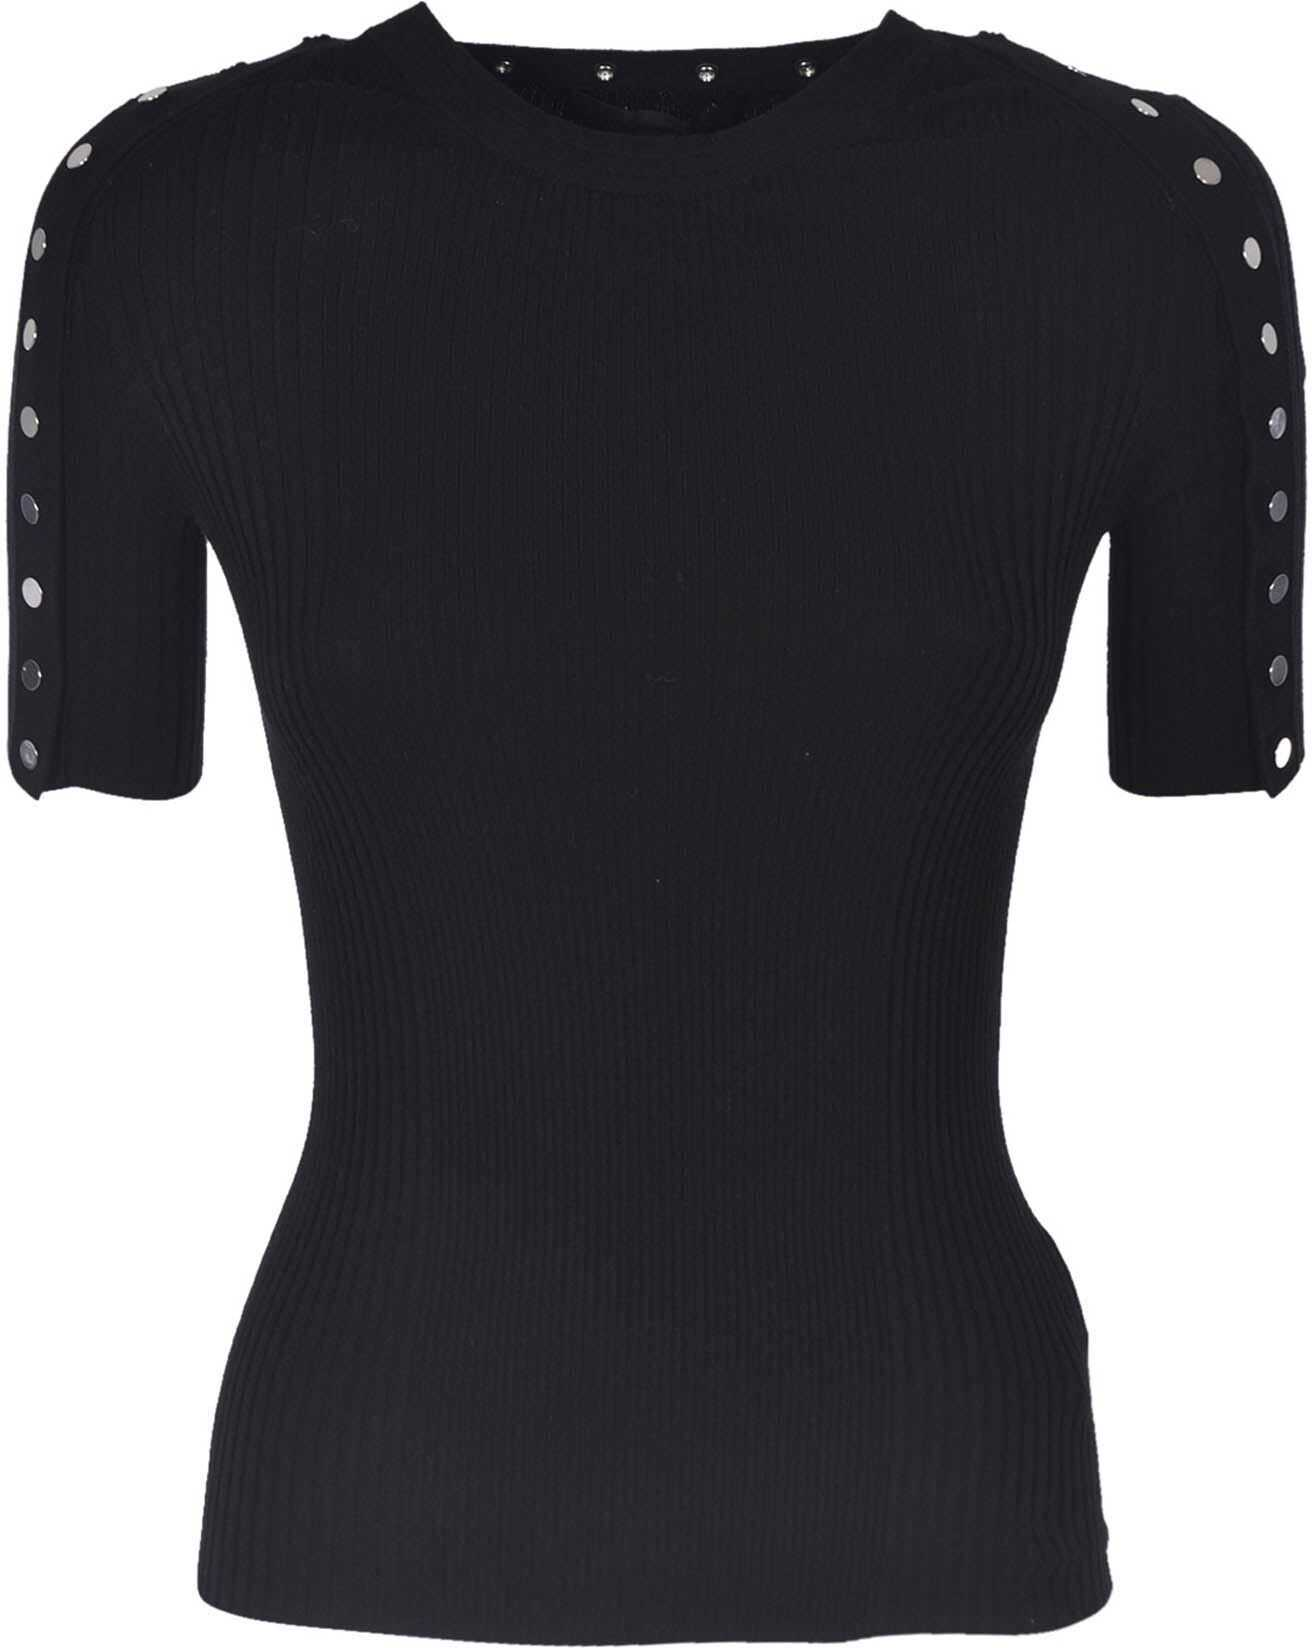 Black T-Shirt With Buttons